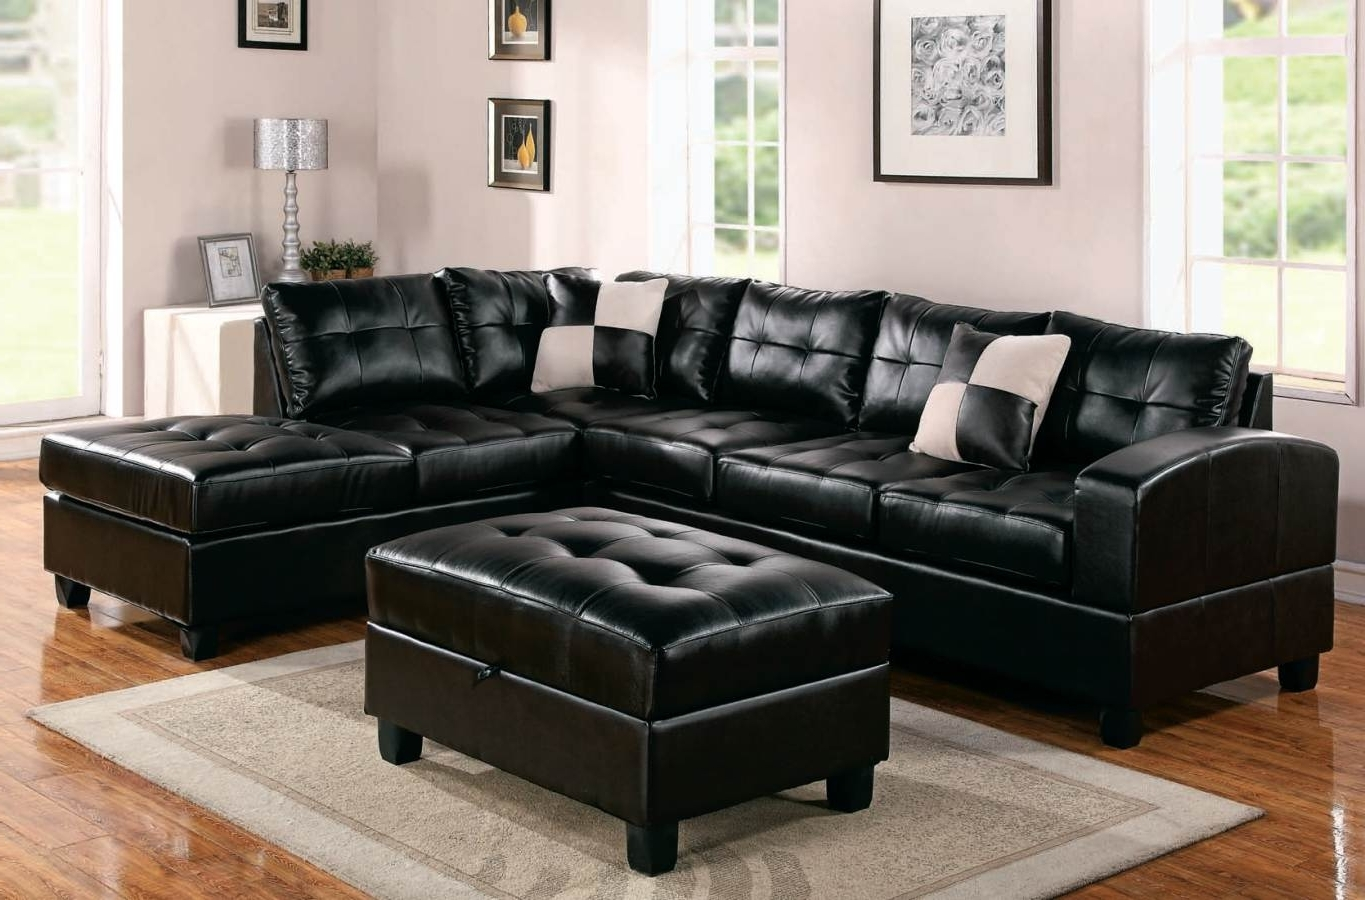 Most Current Oversized Black Leather Sectional Sofa With Tables (View 7 of 15)